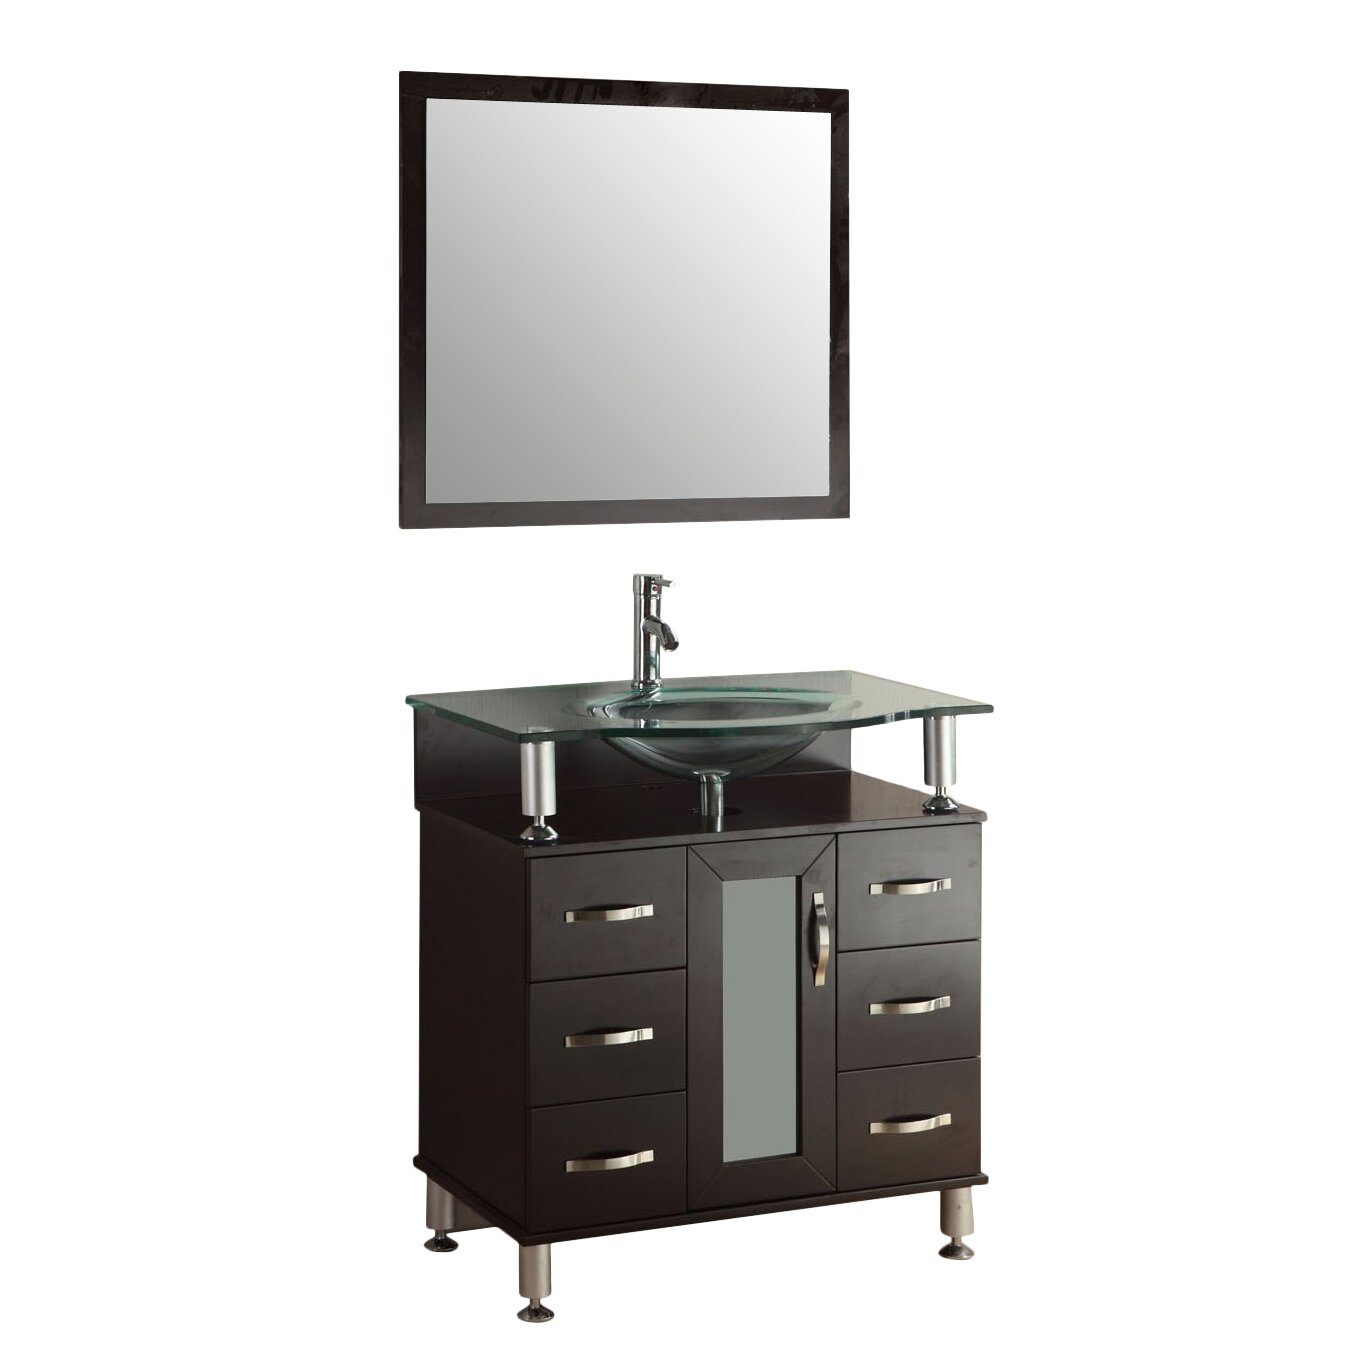 Kokols 36 single bathroom vanity set with mirror reviews wayfair - Kona modern bathroom vanity set ...